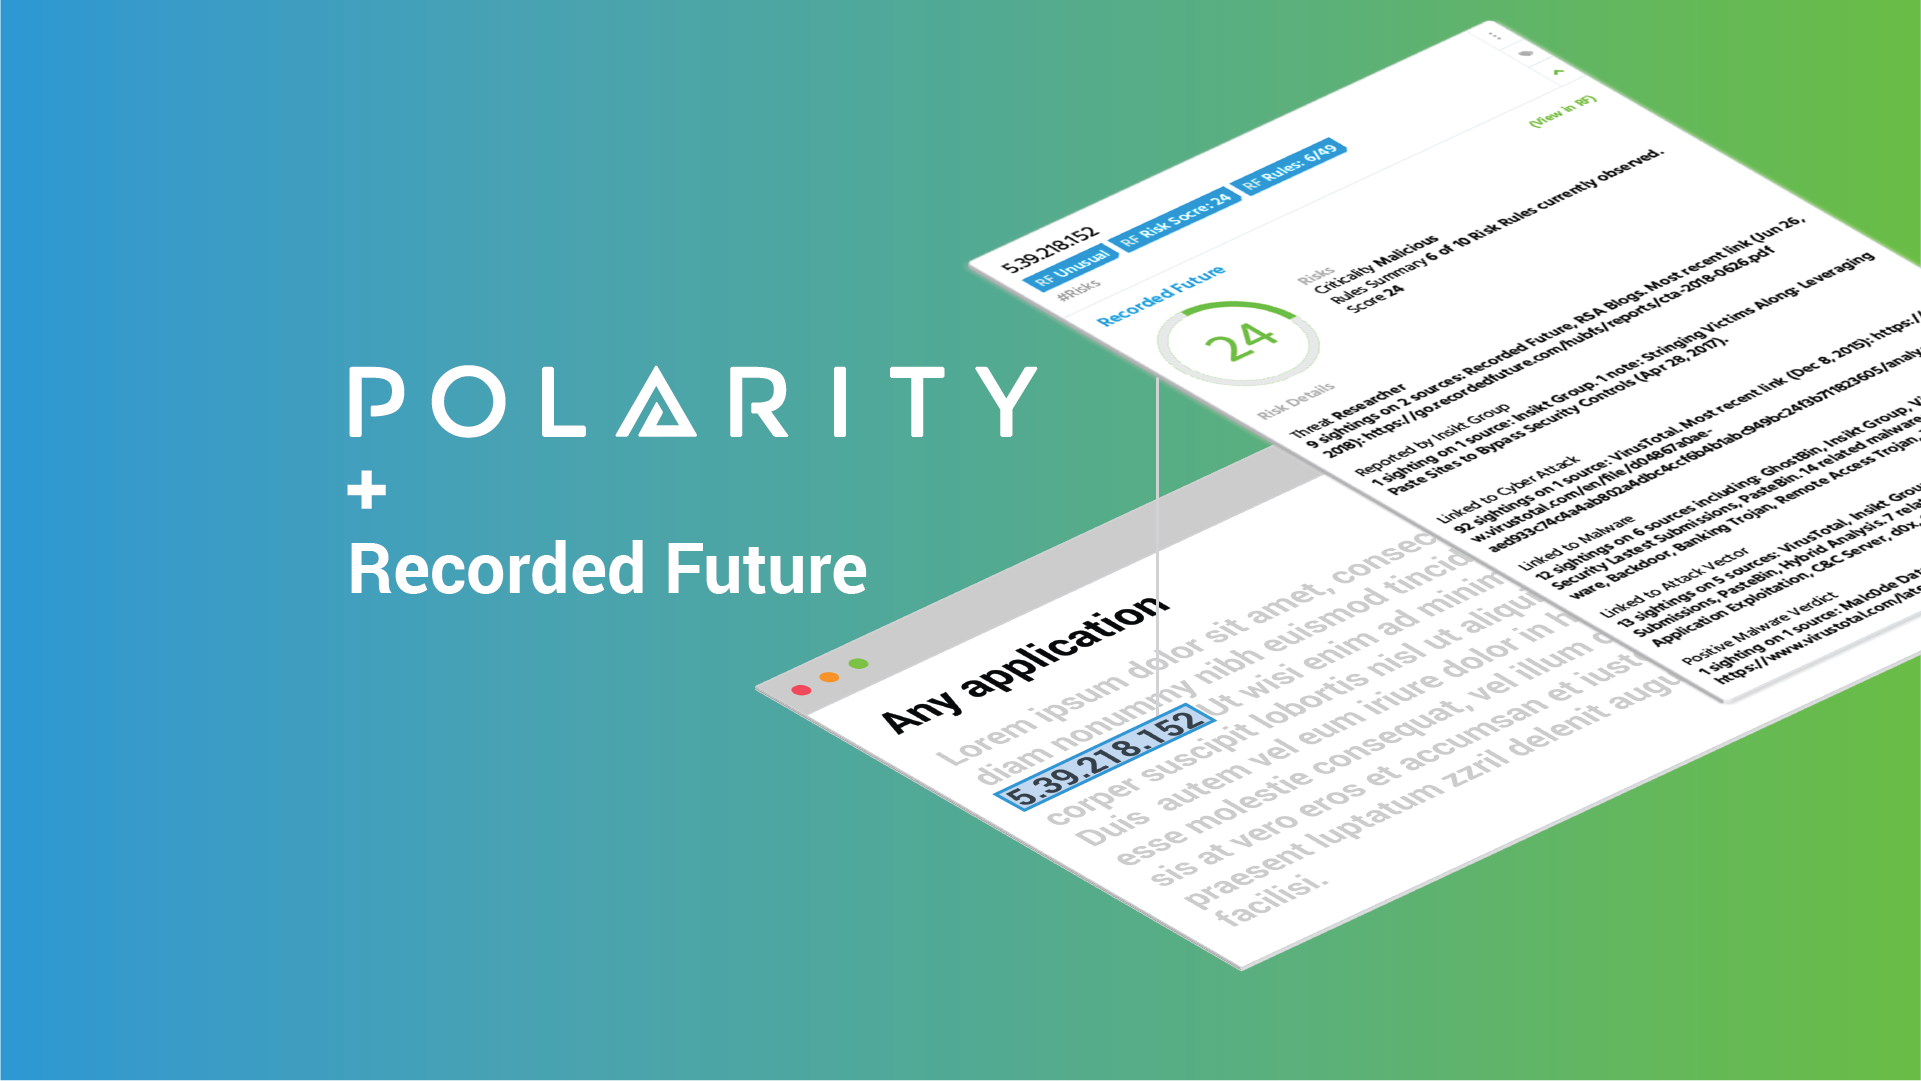 Get Instantaneous Awareness of Threat Intelligence with the Polarity-Recorded Future Integration cover image